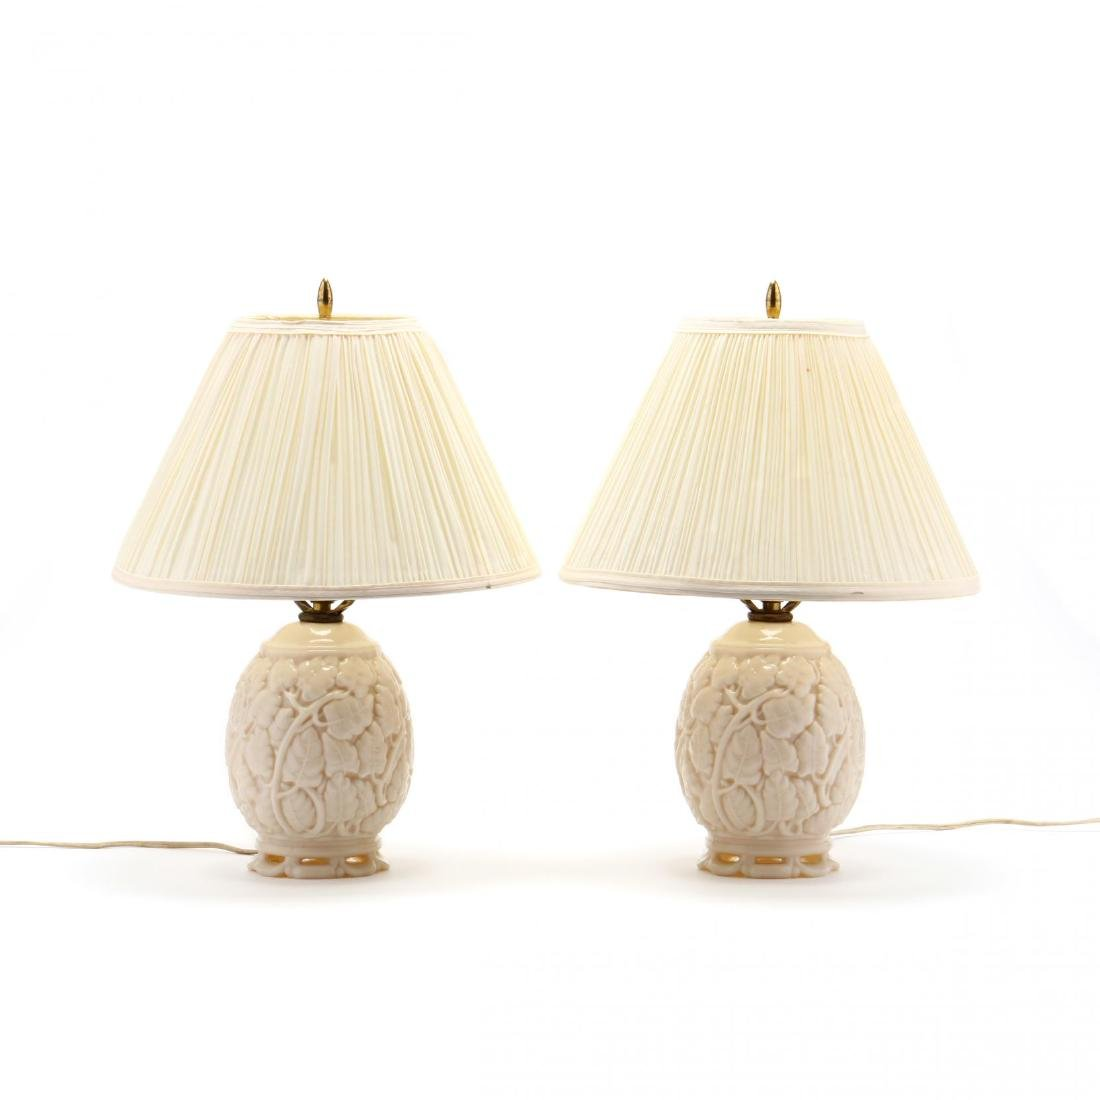 Pair of Art Deco Consolidated Glass Table Lamps